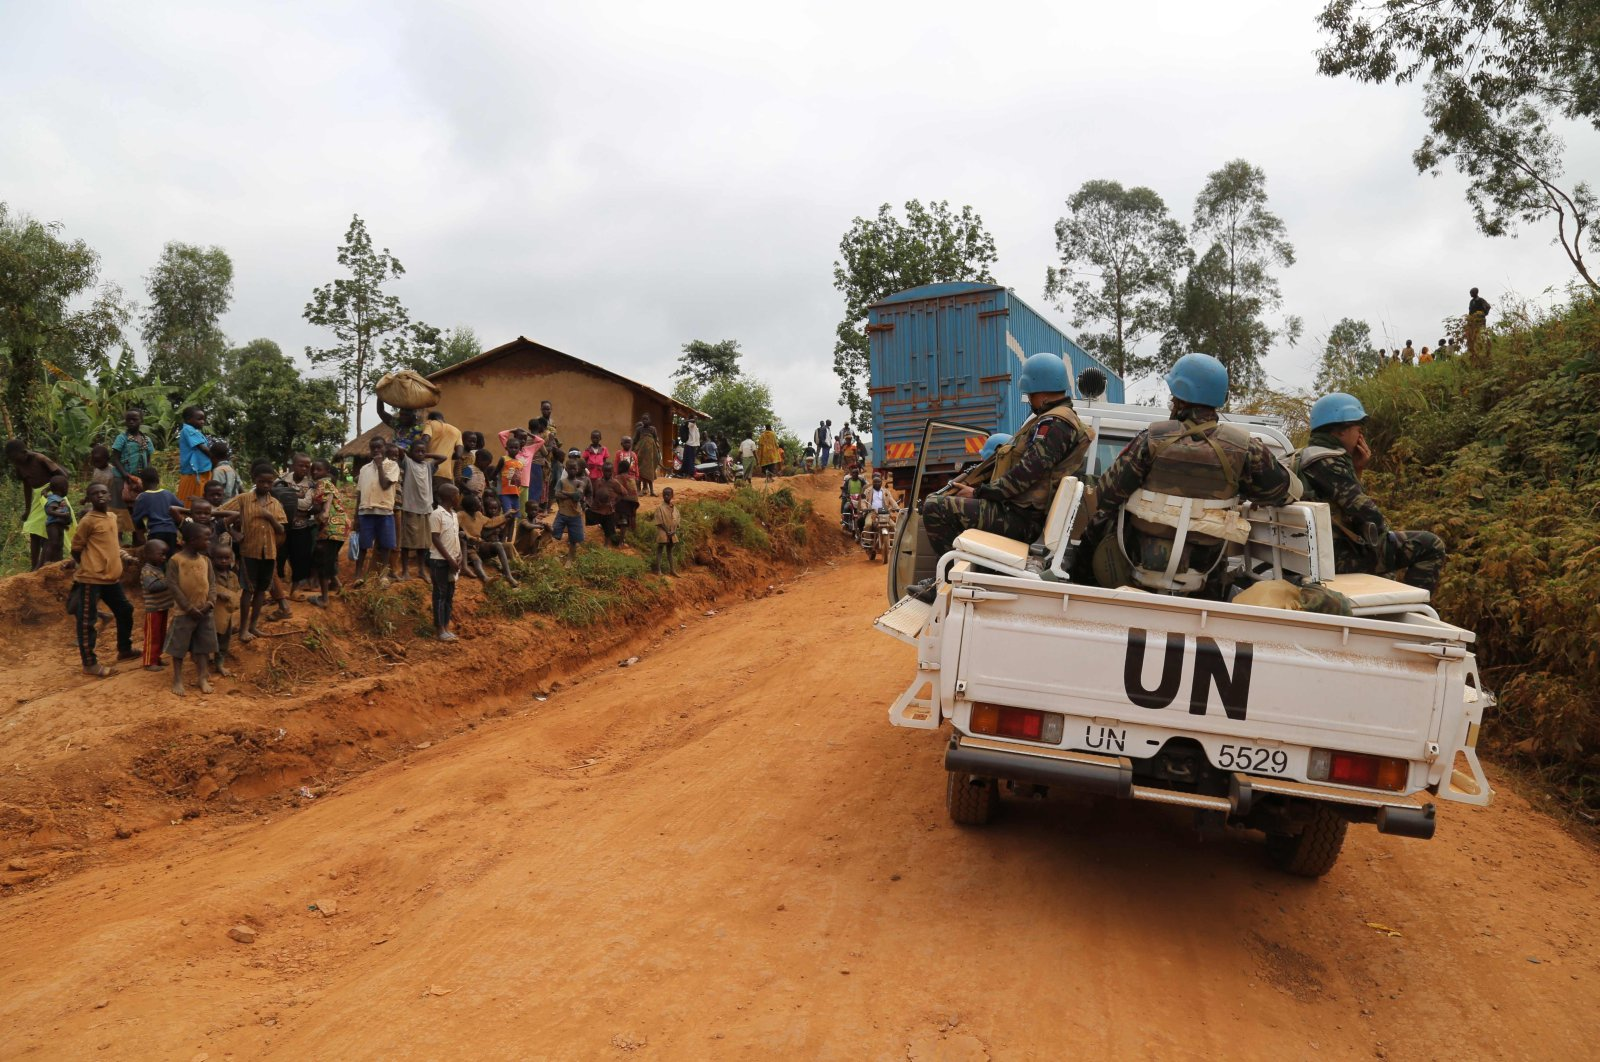 In this photograph taken on March 13, 2020, Moroccan soldiers from the UN mission in DRC (Monusco) ride in a vehicle as they patrol in the violence-torn Djugu territory, Ituri province, eastern DRCongo. (AFP Photo)